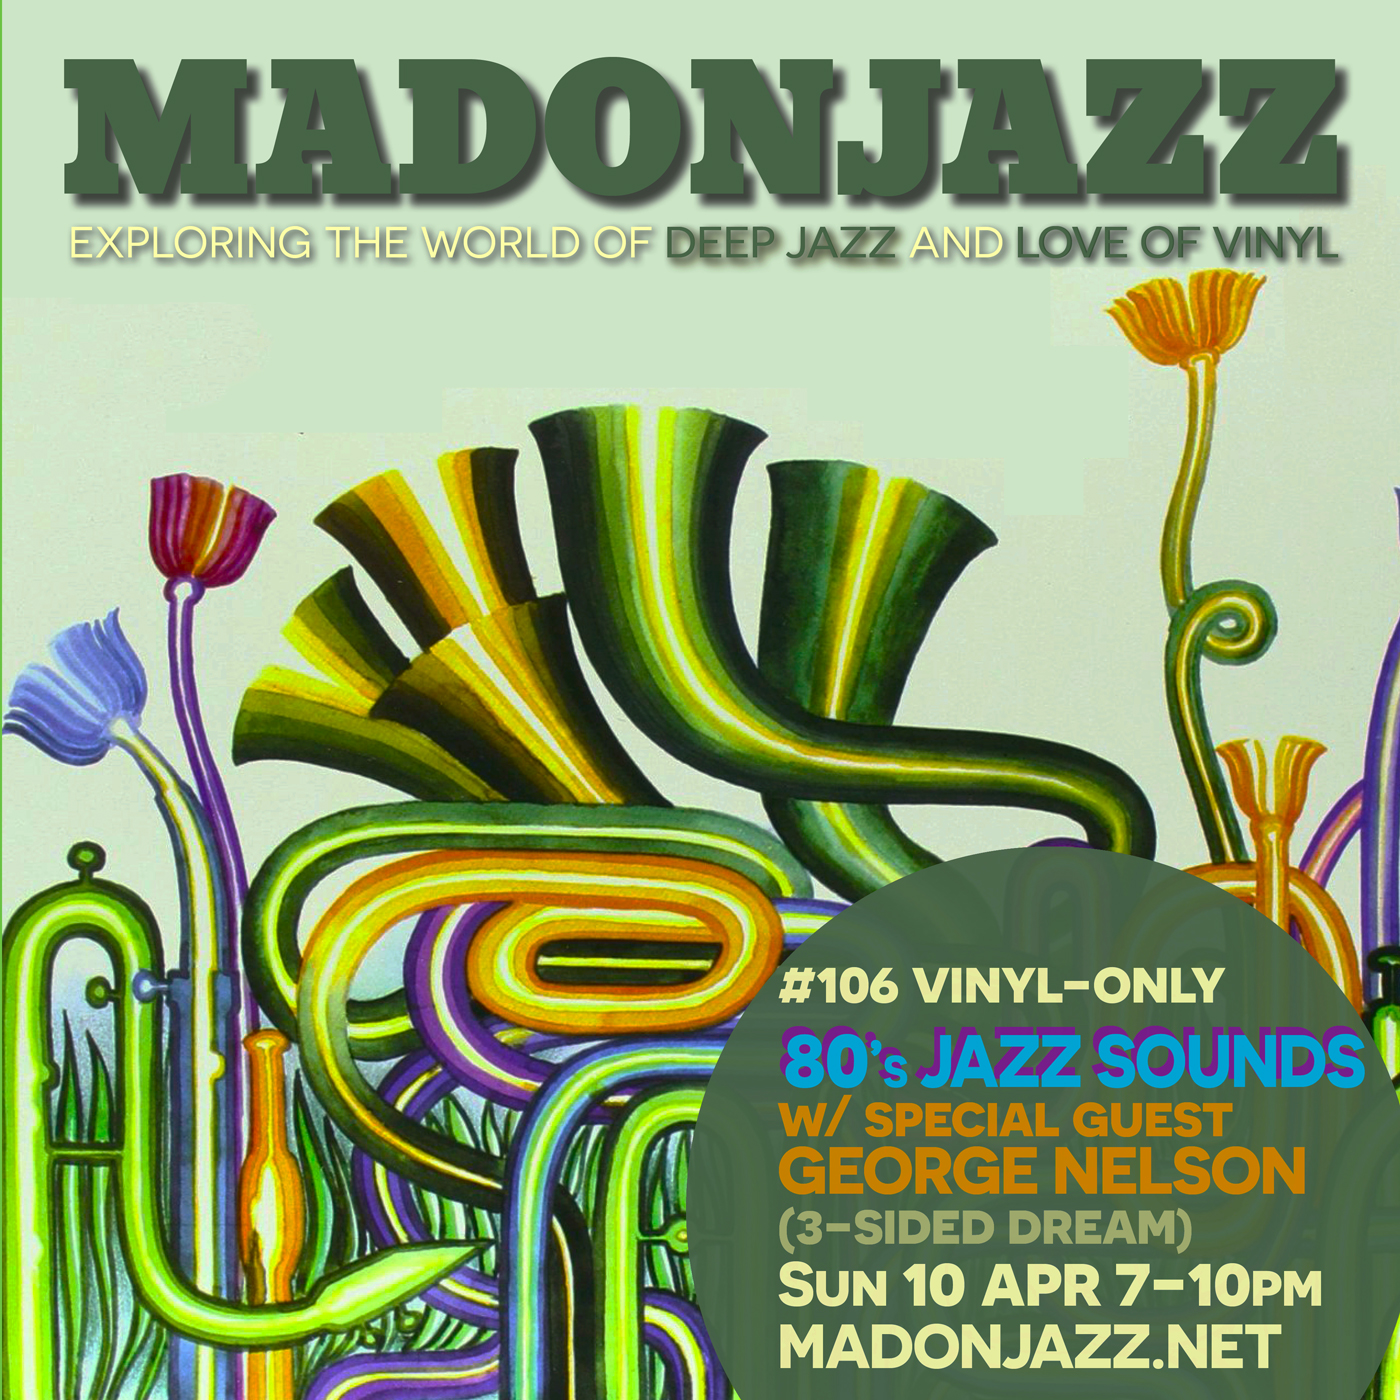 MADONJAZZ 80's JAZZ SOUNDS